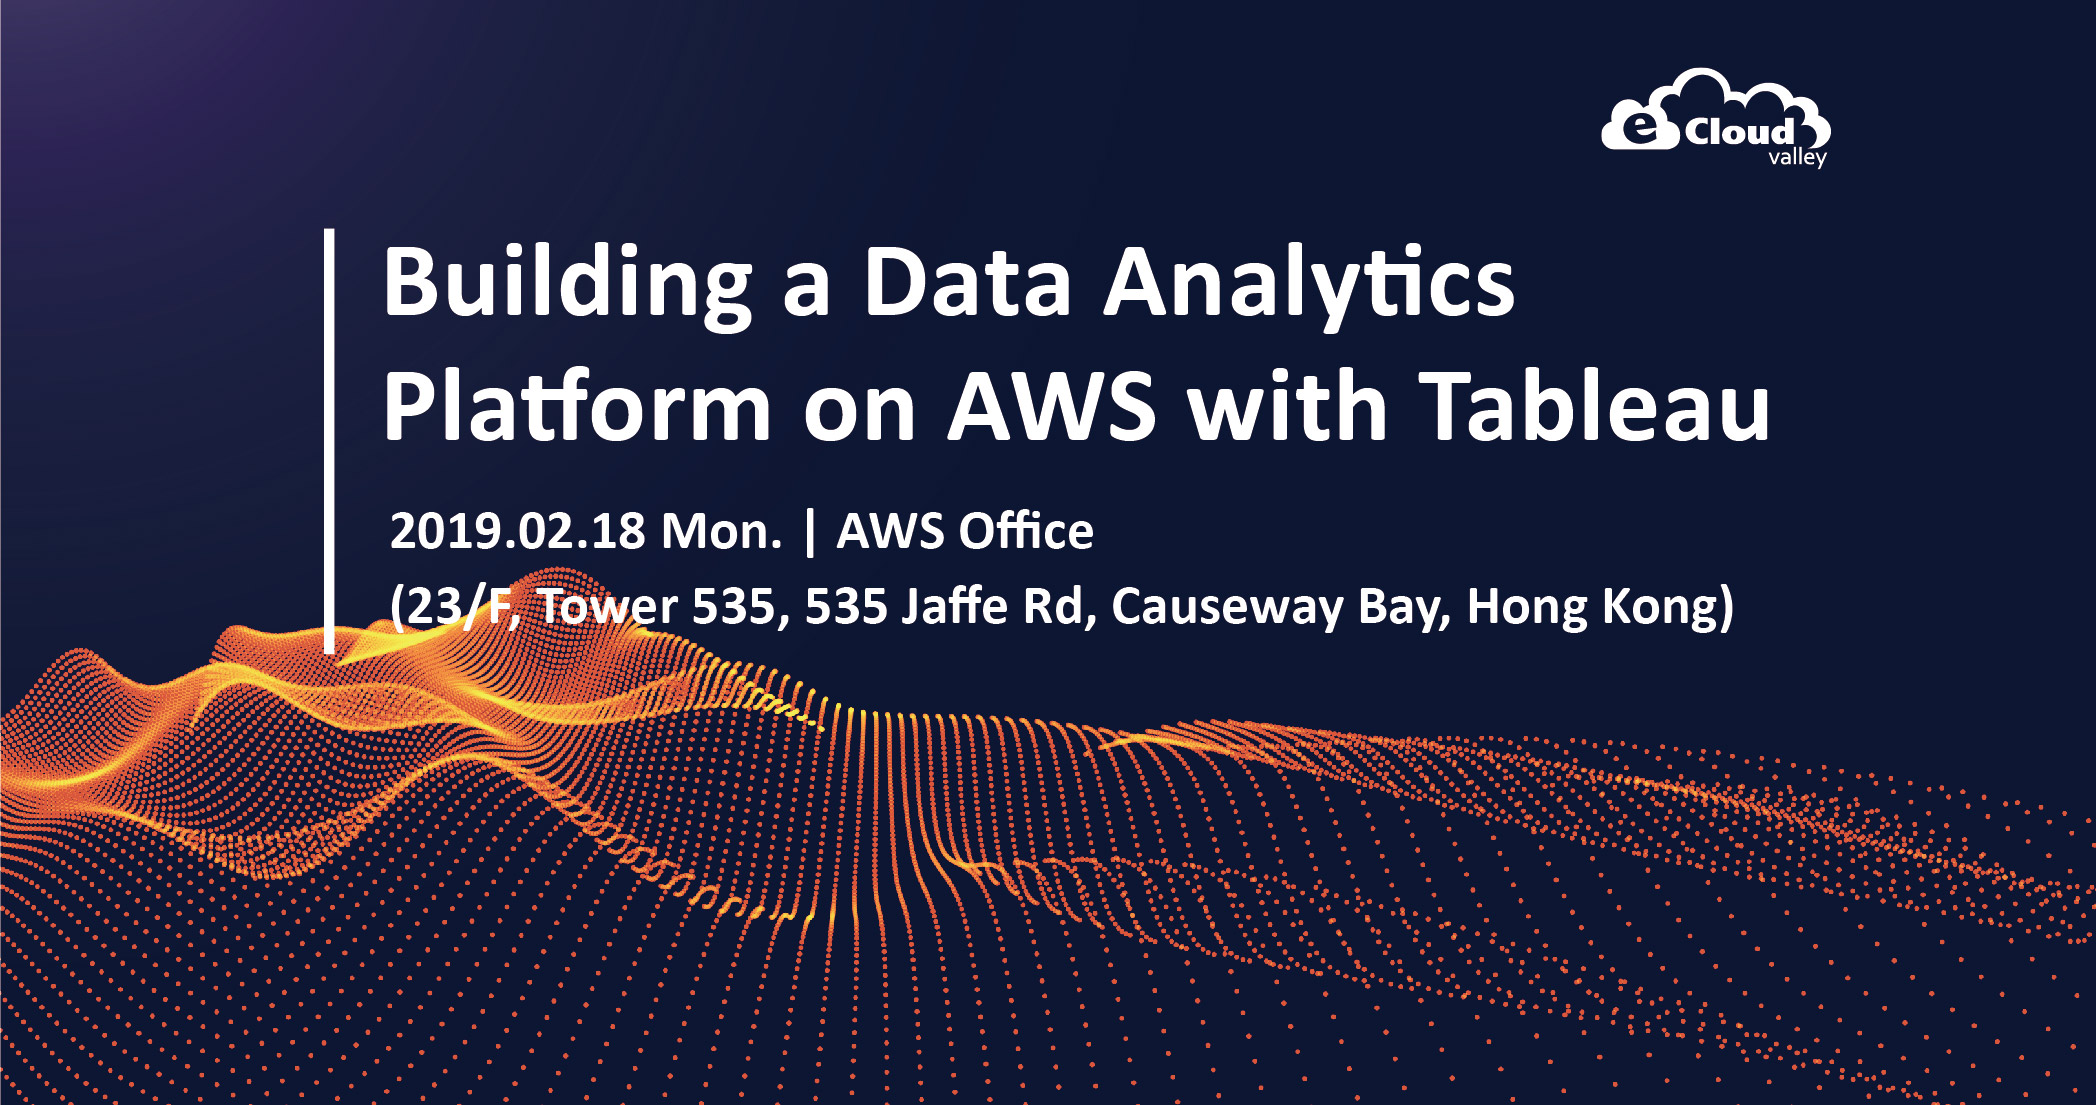 Building a Data Analytics platform on AWS with Tableau